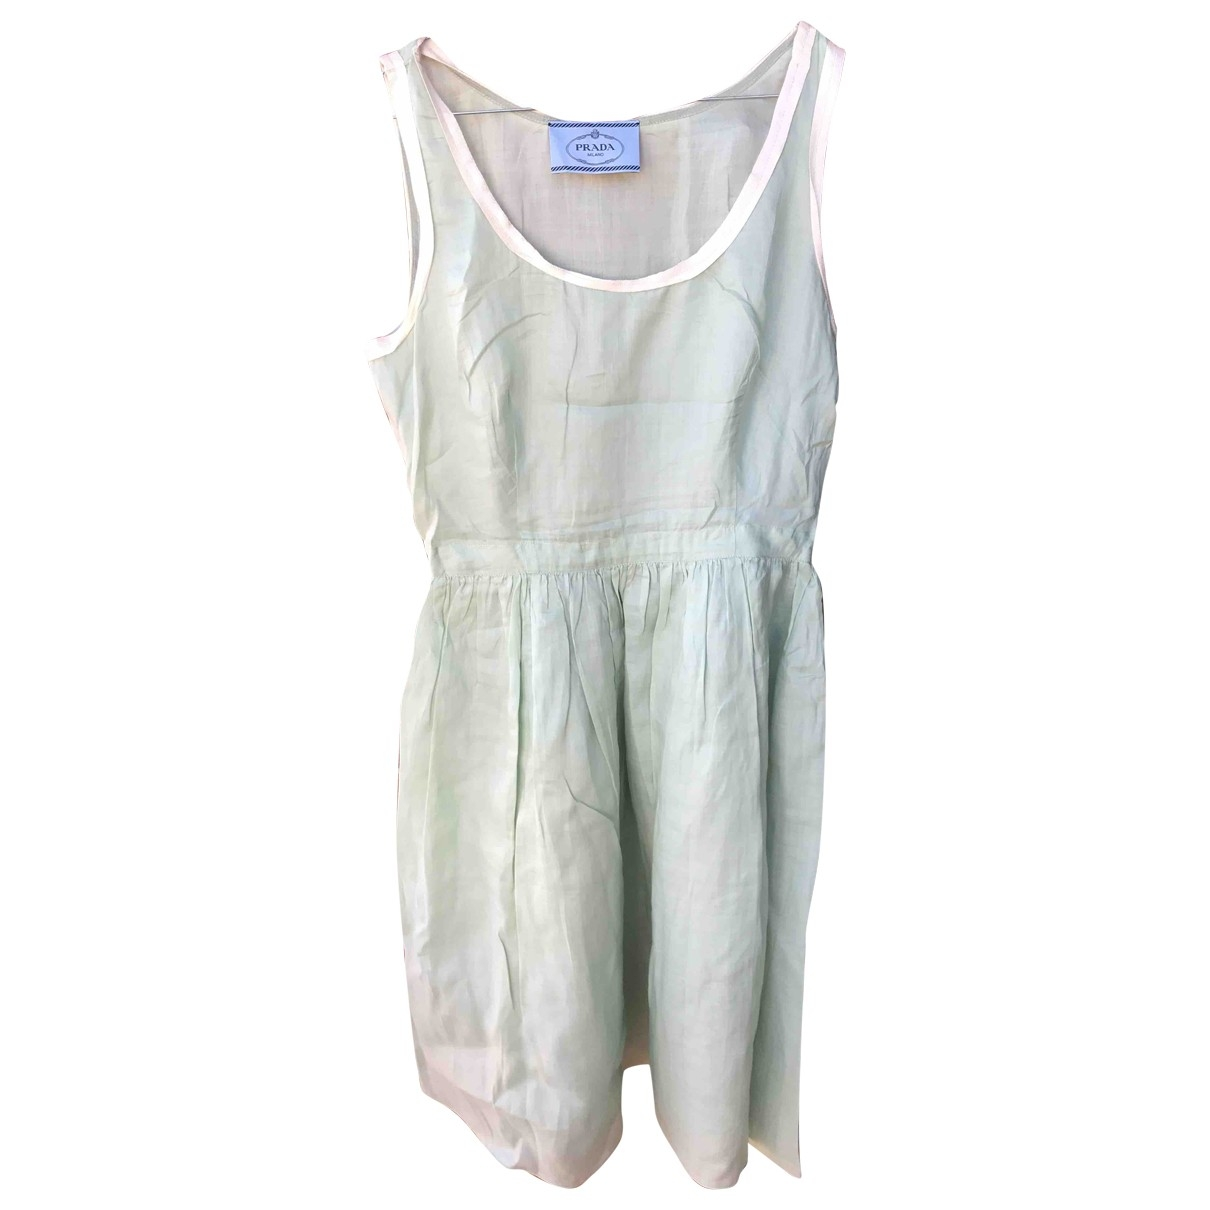 Prada \N Linen dress for Women 44 IT